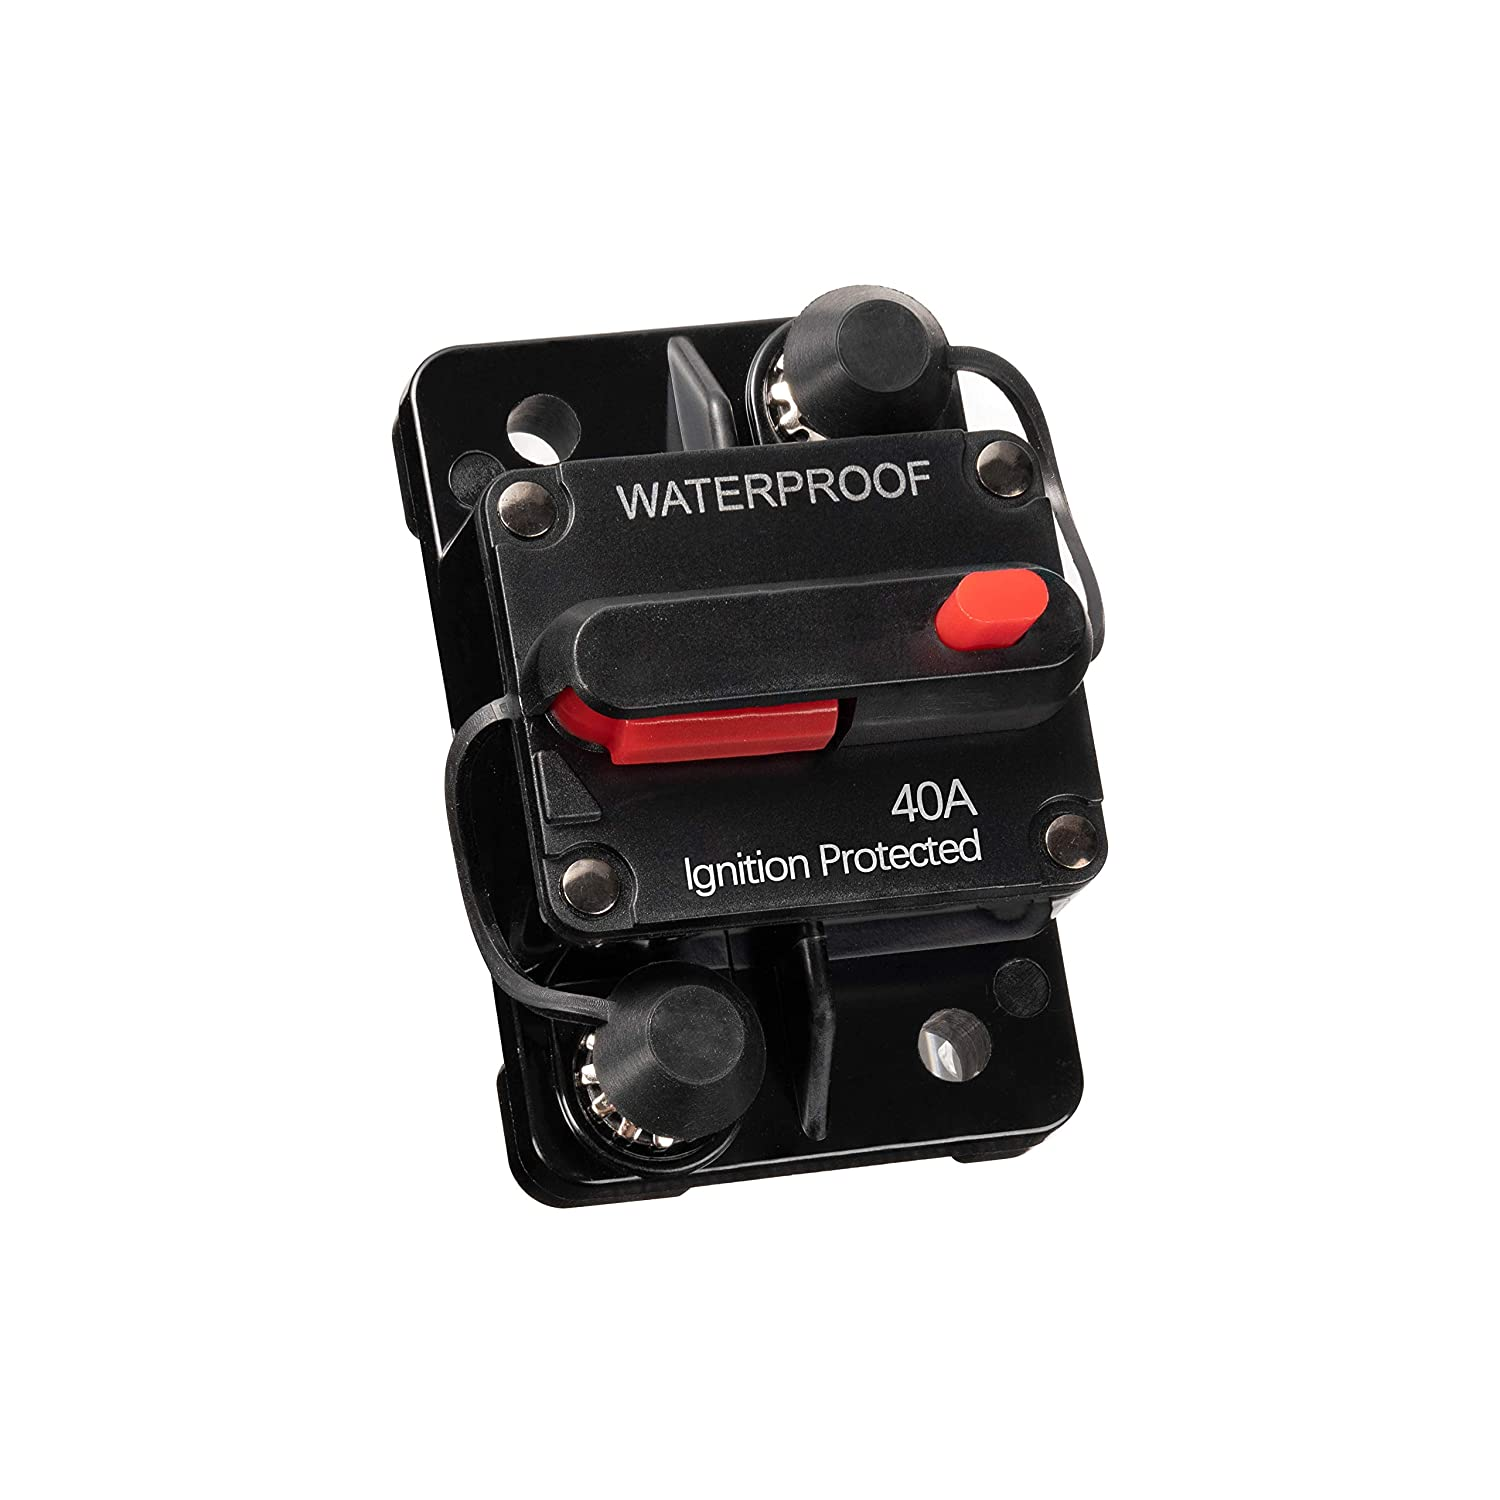 Allkpoper 30A-300A Premium High-Current Circuit Breakers 12-48V DC Amp Breaker with Fuse Manual Reset Switch Waterproof for Boat Marine RV Yacht Battery Trailer Bus Truck 60A